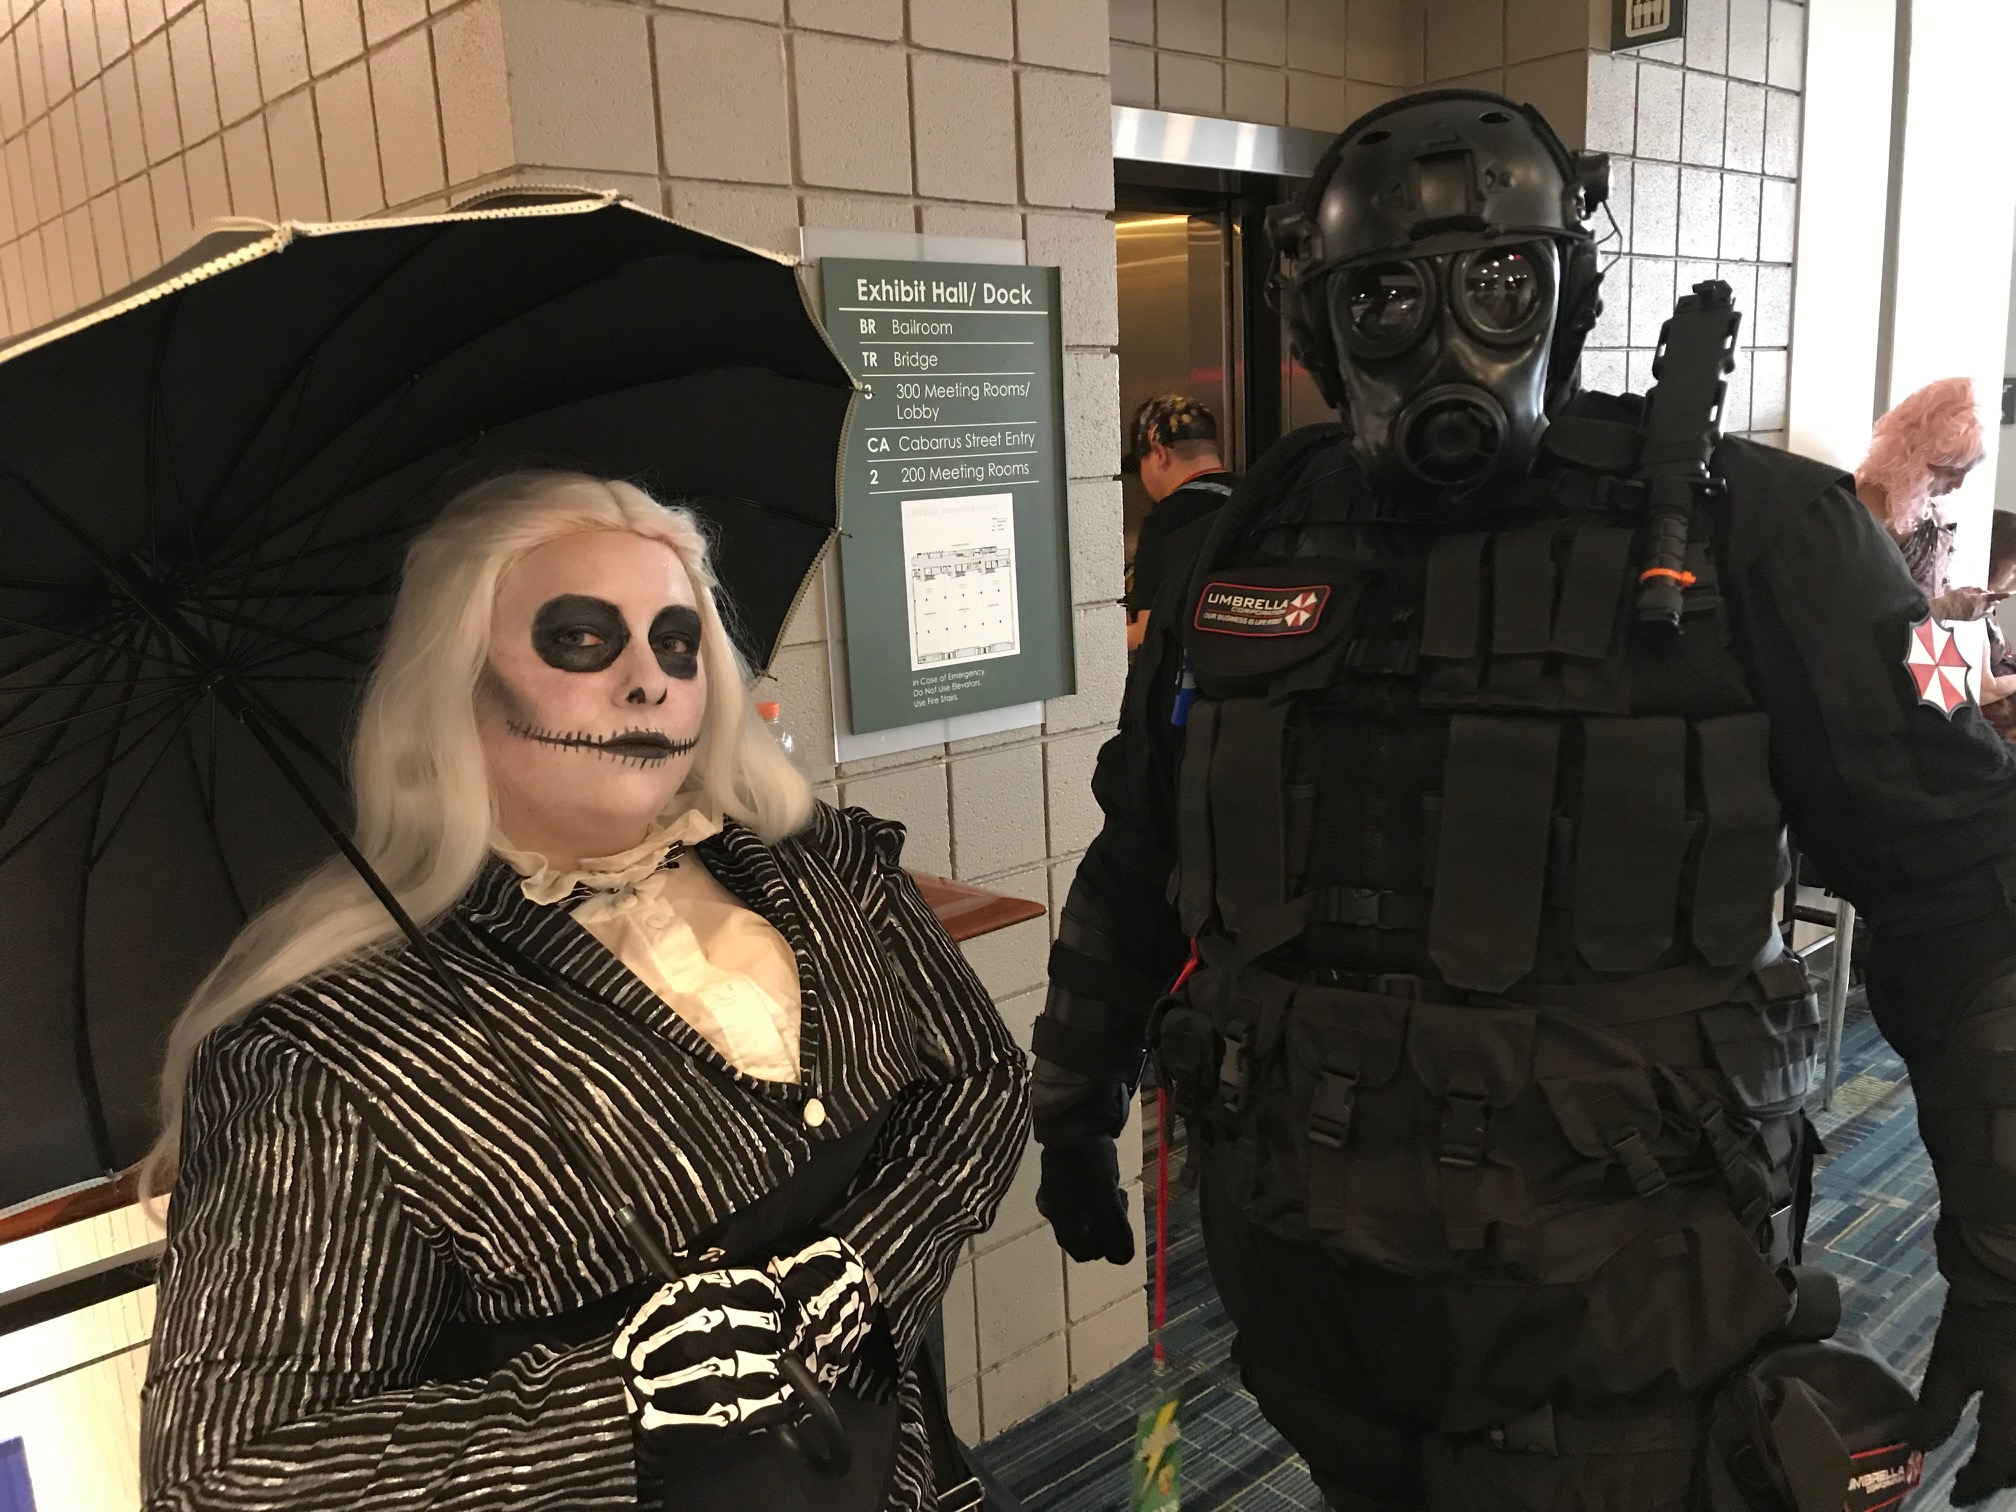 <div class='meta'><div class='origin-logo' data-origin='WTVD'></div><span class='caption-text' data-credit='Josh Chapin'>Scenes from Raleigh's Supercon on Friday.</span></div>